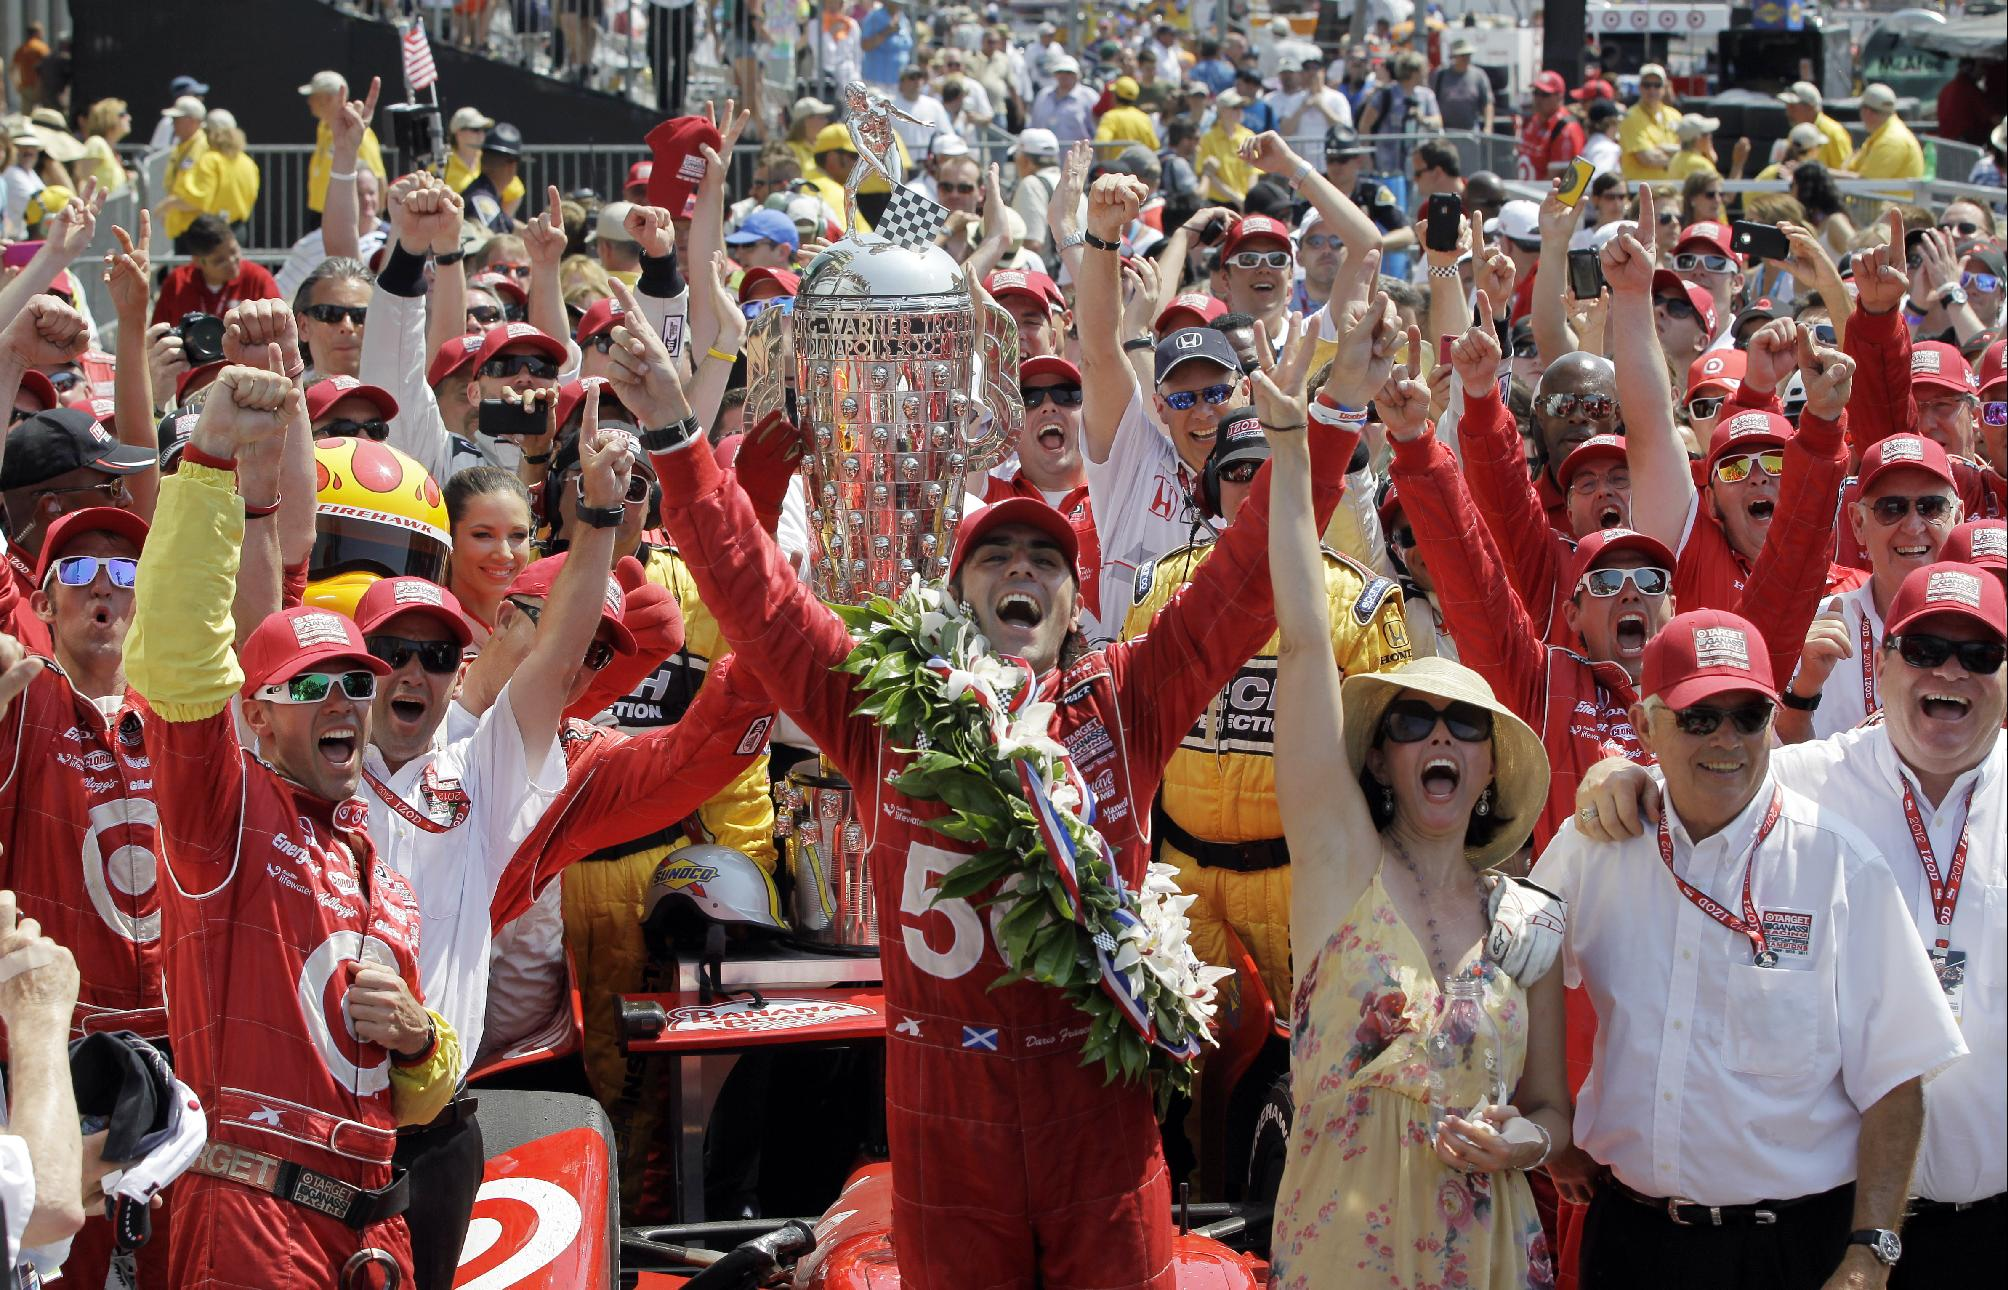 Ganassi: Franchitti heartbroken over retirement